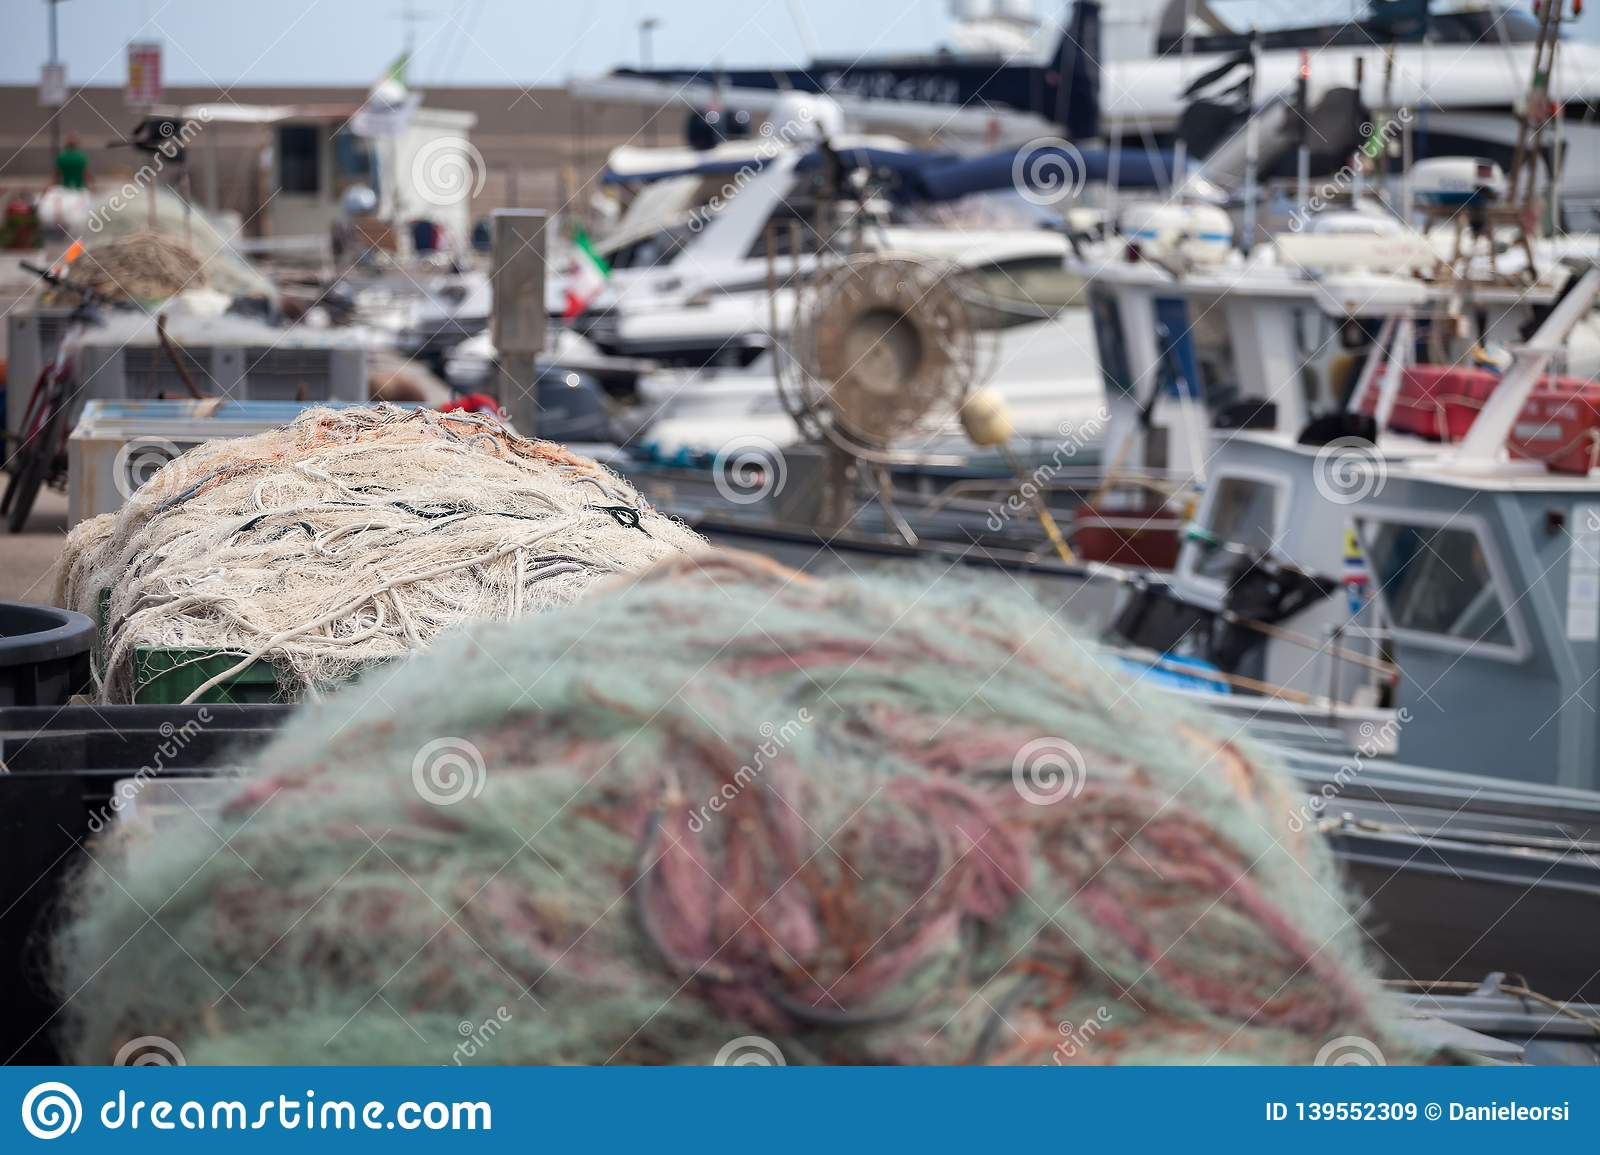 A view of fishing nets inside of the boat